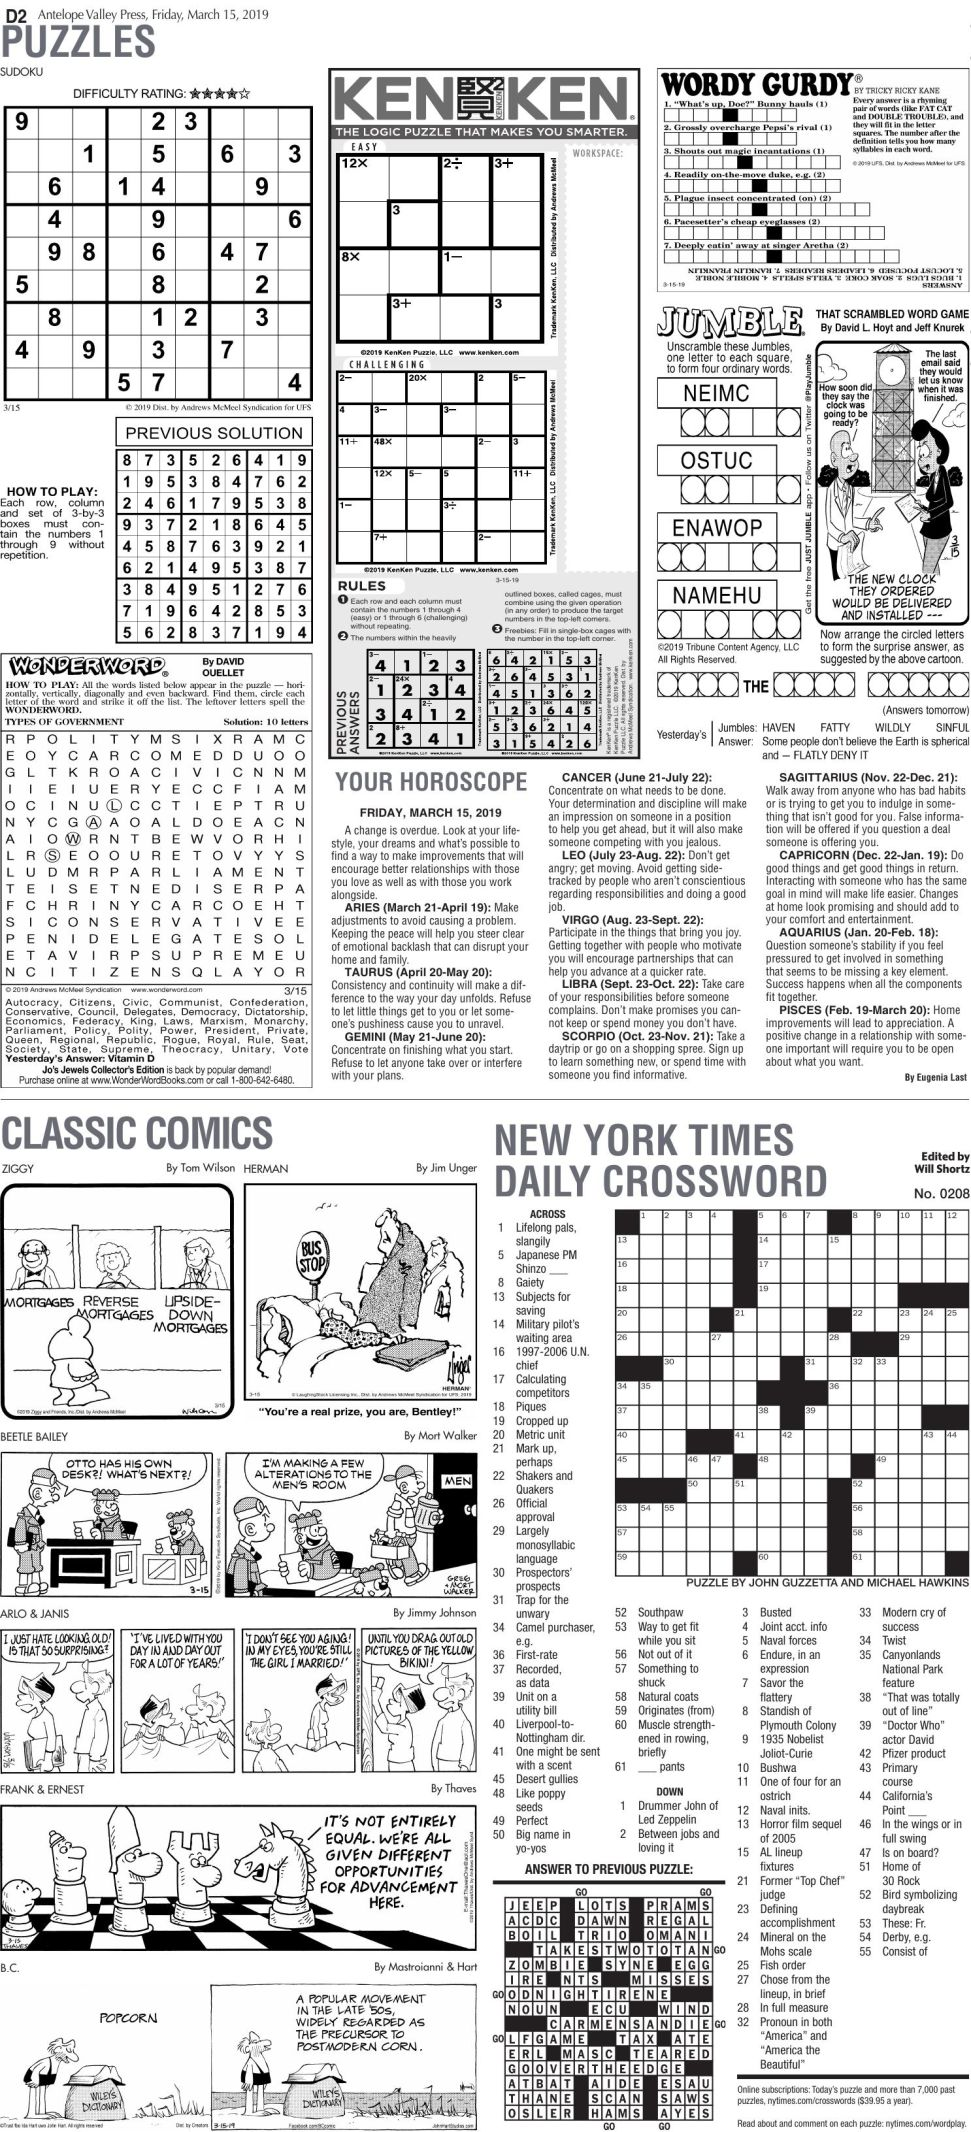 March 15, 2019 Puzzles